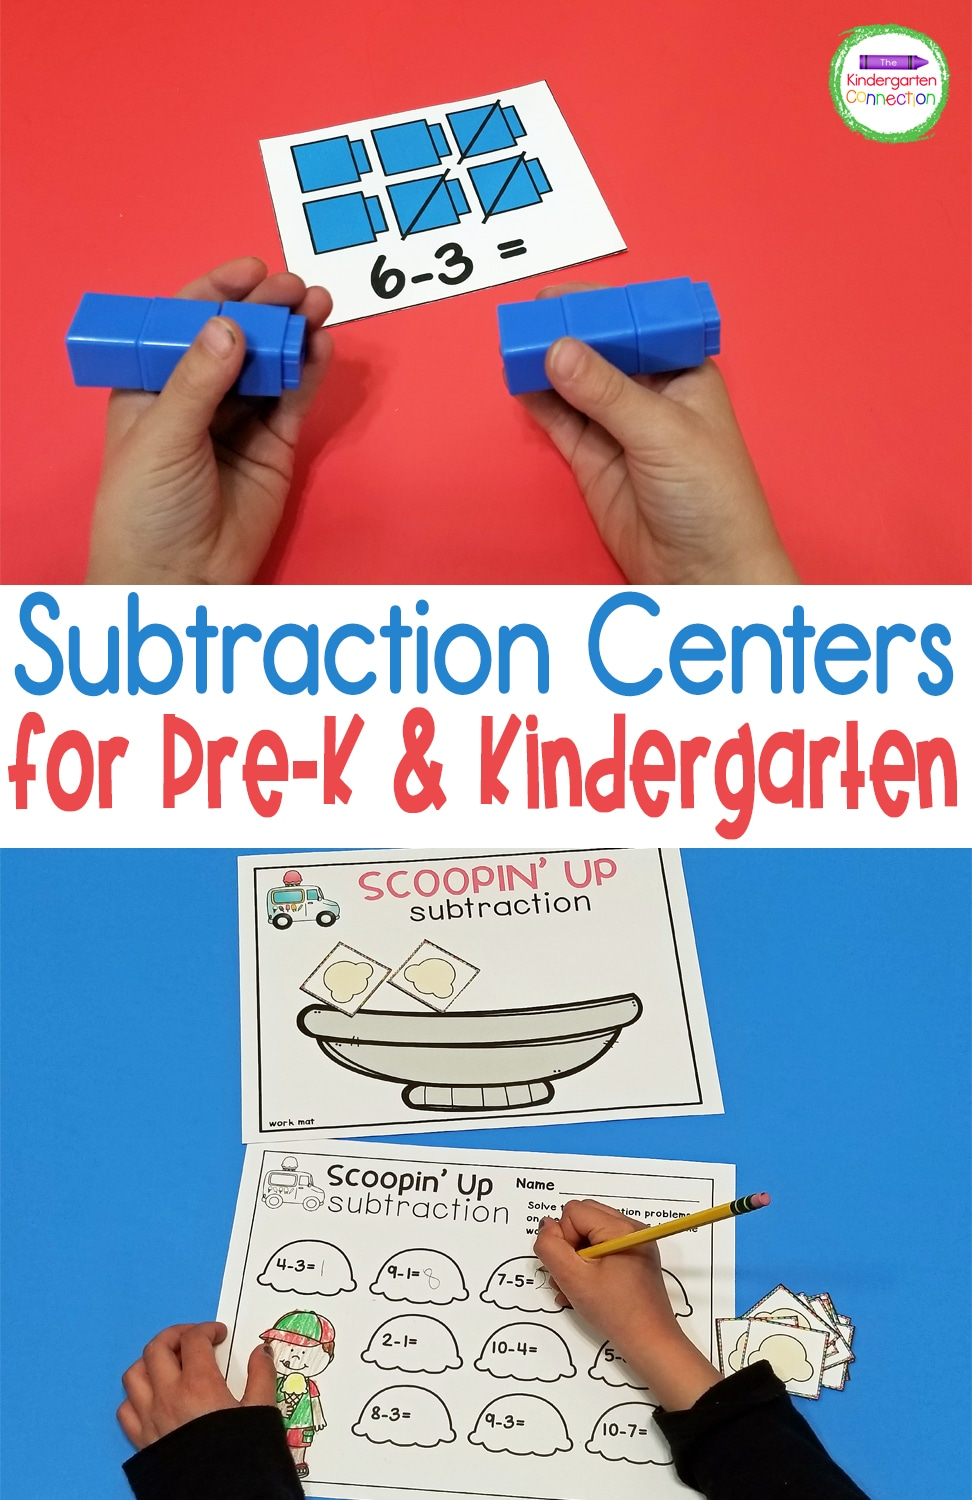 These Subtraction Activities and Centers are a great addition to any Pre-K or Kindergarten to build skills for subtraction within 5 and 10.